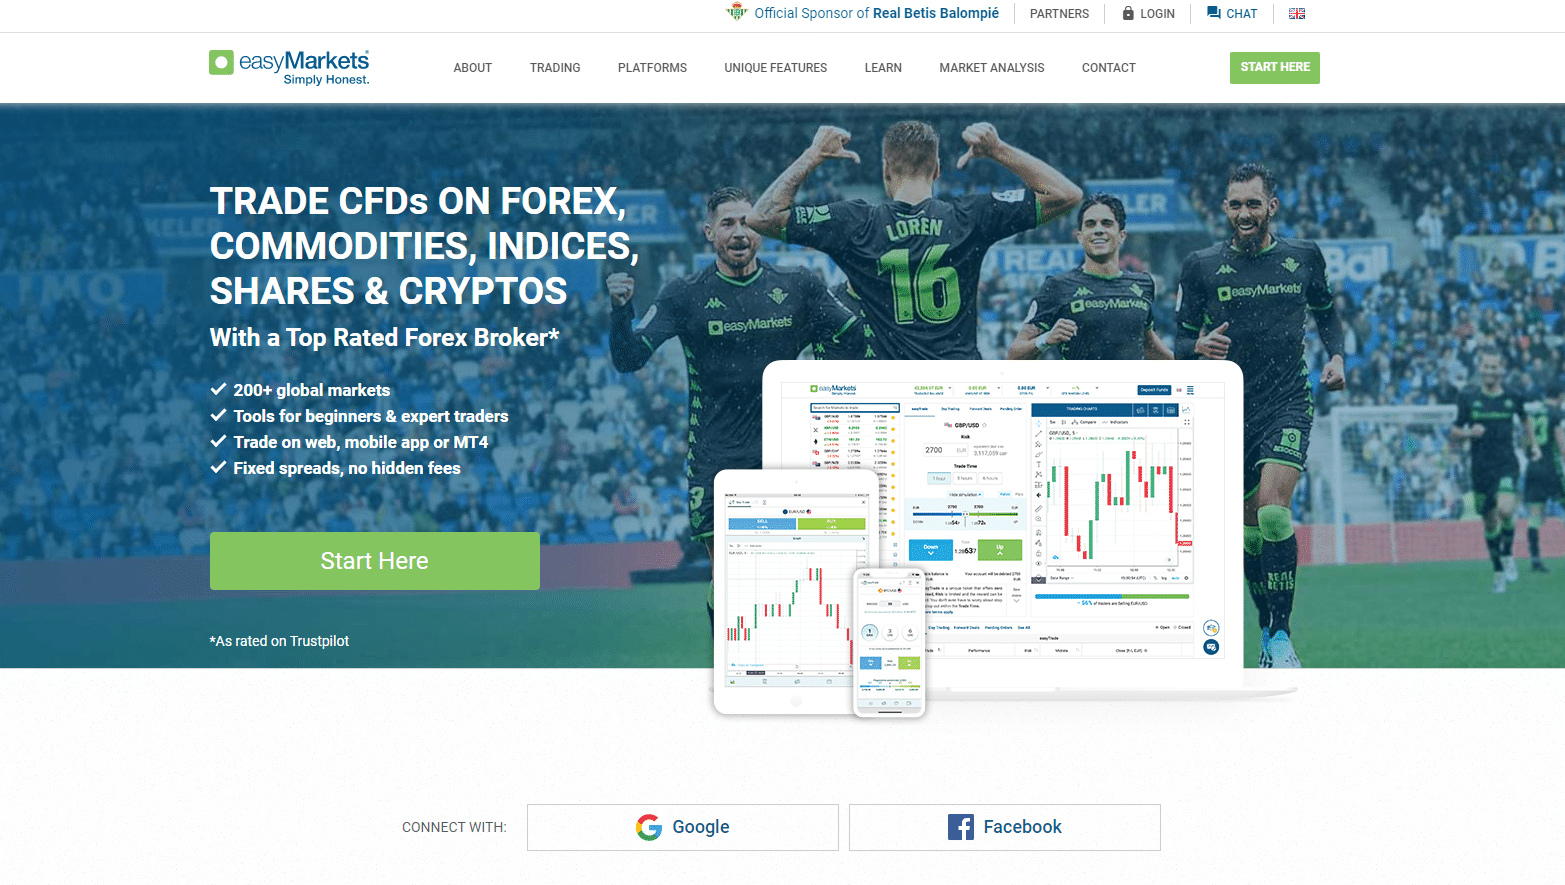 Website of the CFD Broker easyMarkets